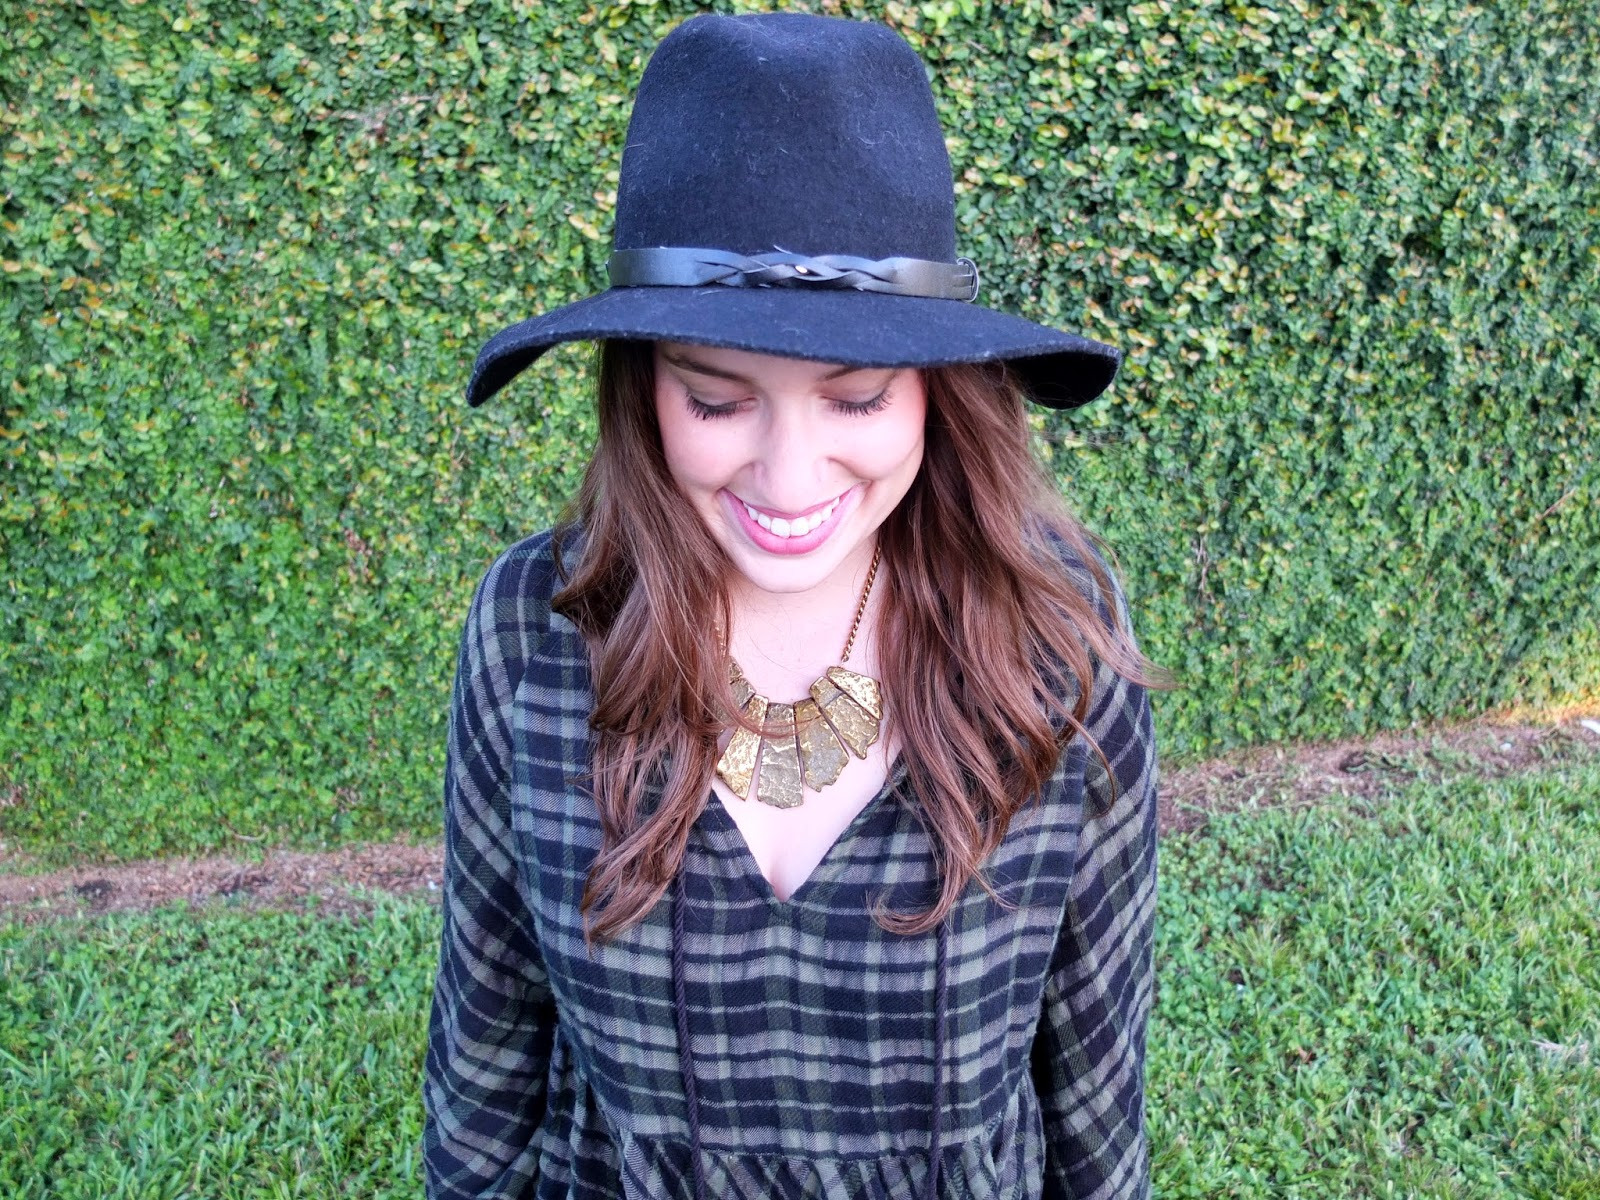 Anthropologie Plaid Peasant Top, Anthropologie Green Top, Anthropologie Green Plaid Top, Trendy in Texas, Fall Fashion, Lone Star Looking Glass, Fall Style, Black Floppy Felt Hat, Black Floppy Hat